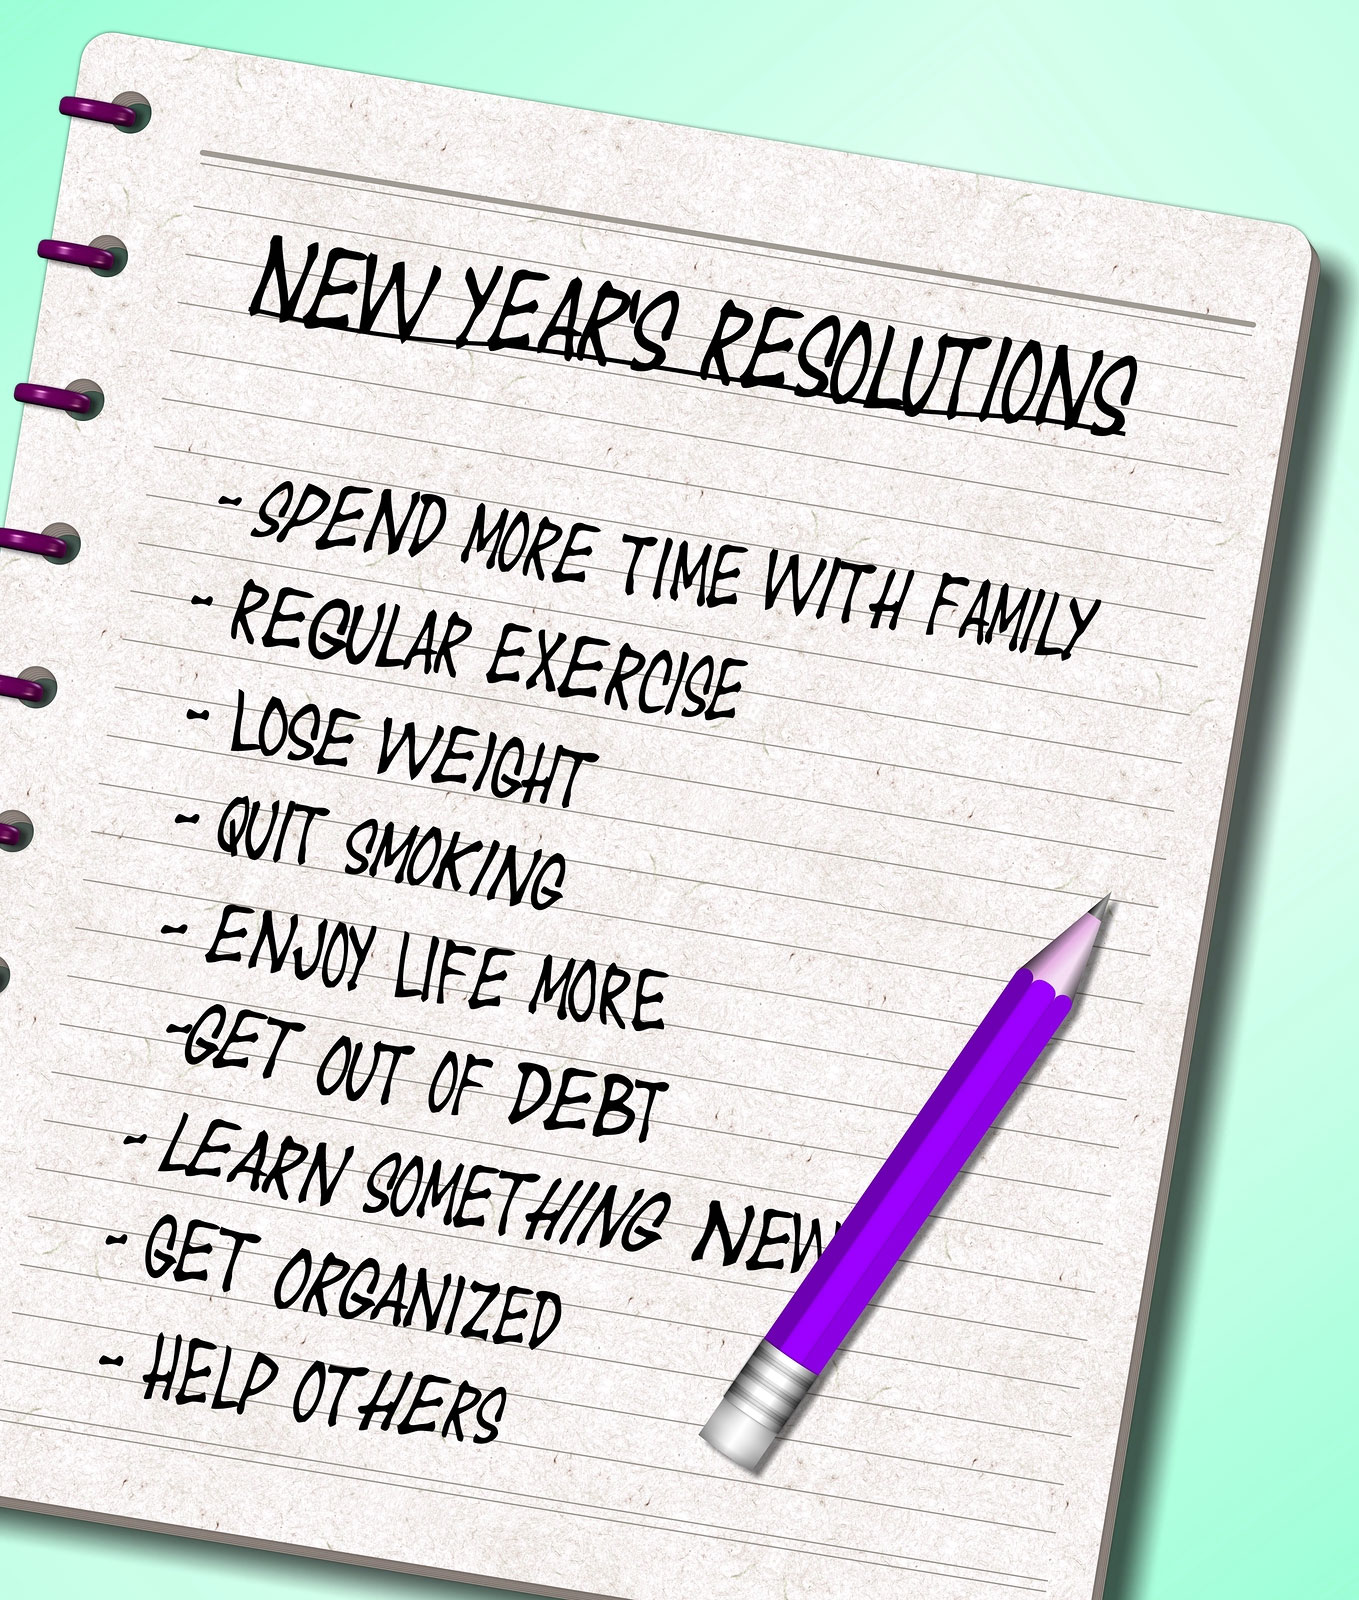 4 Tips to Keep Your New Year's Resolutions by Melinda Curtis